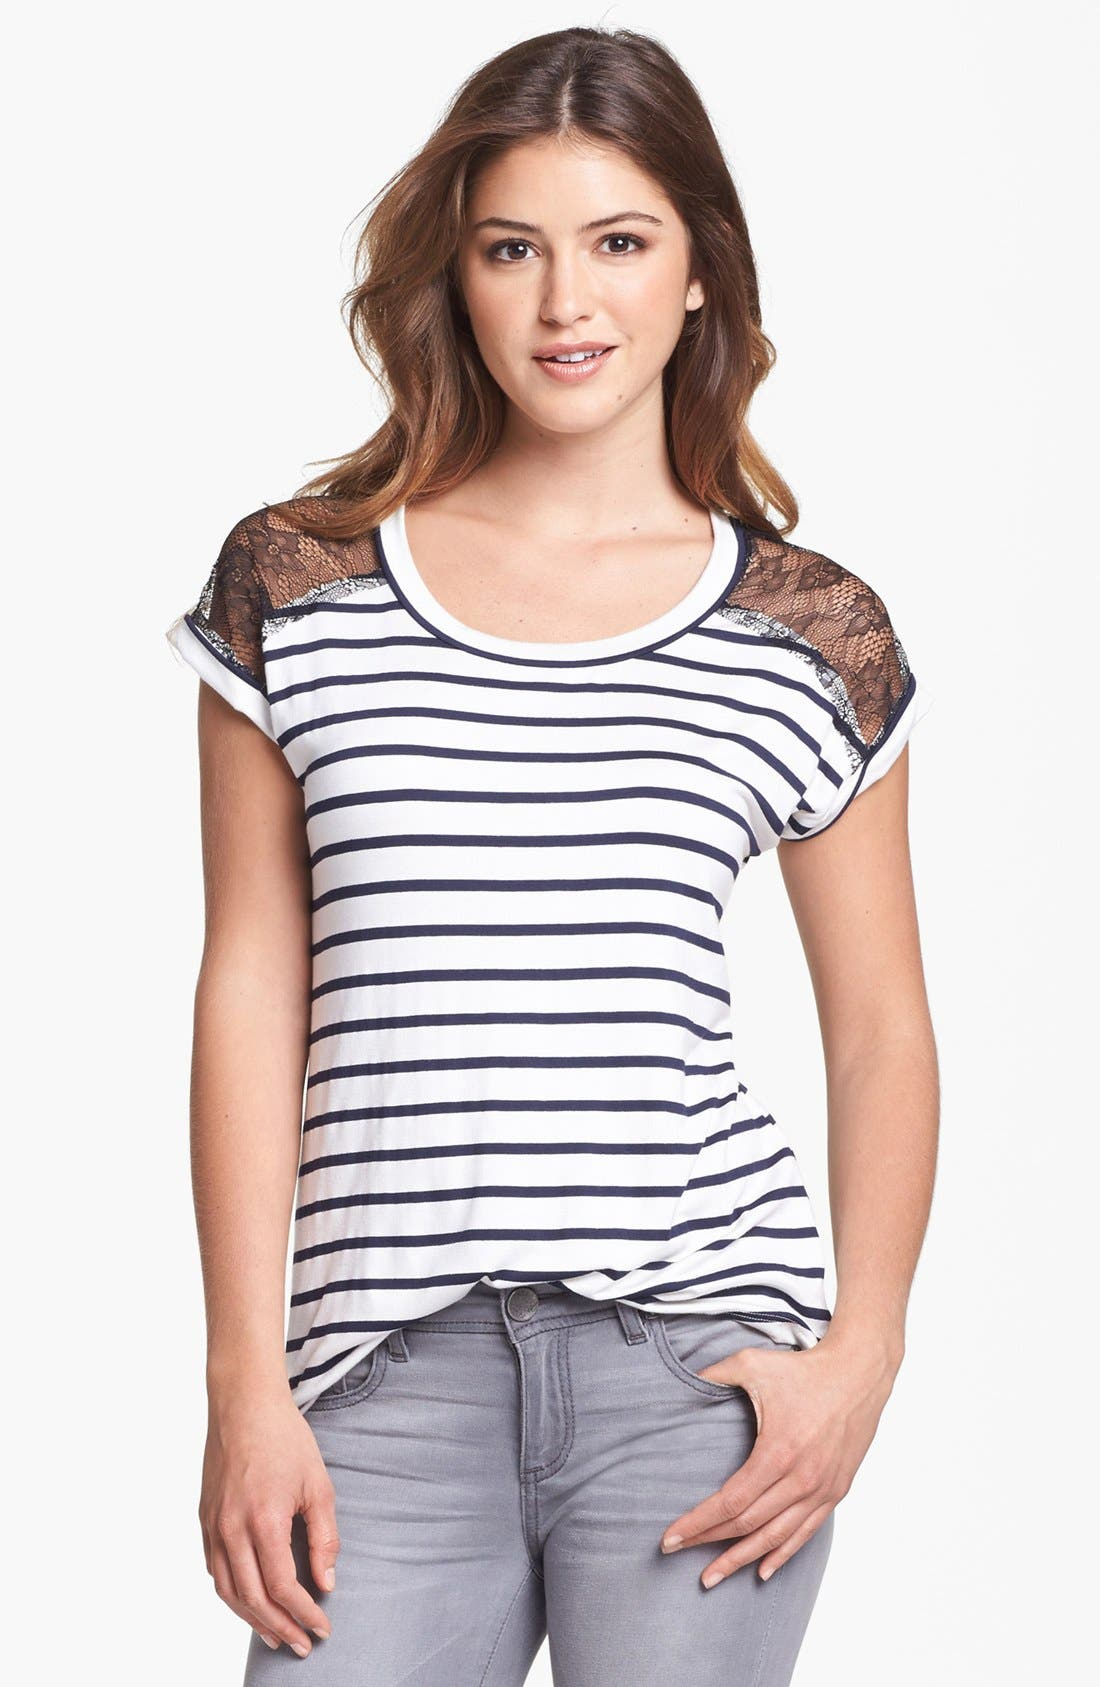 Alternate Image 1 Selected - Pleione Lace Yoke Stripe Tee (Petite)